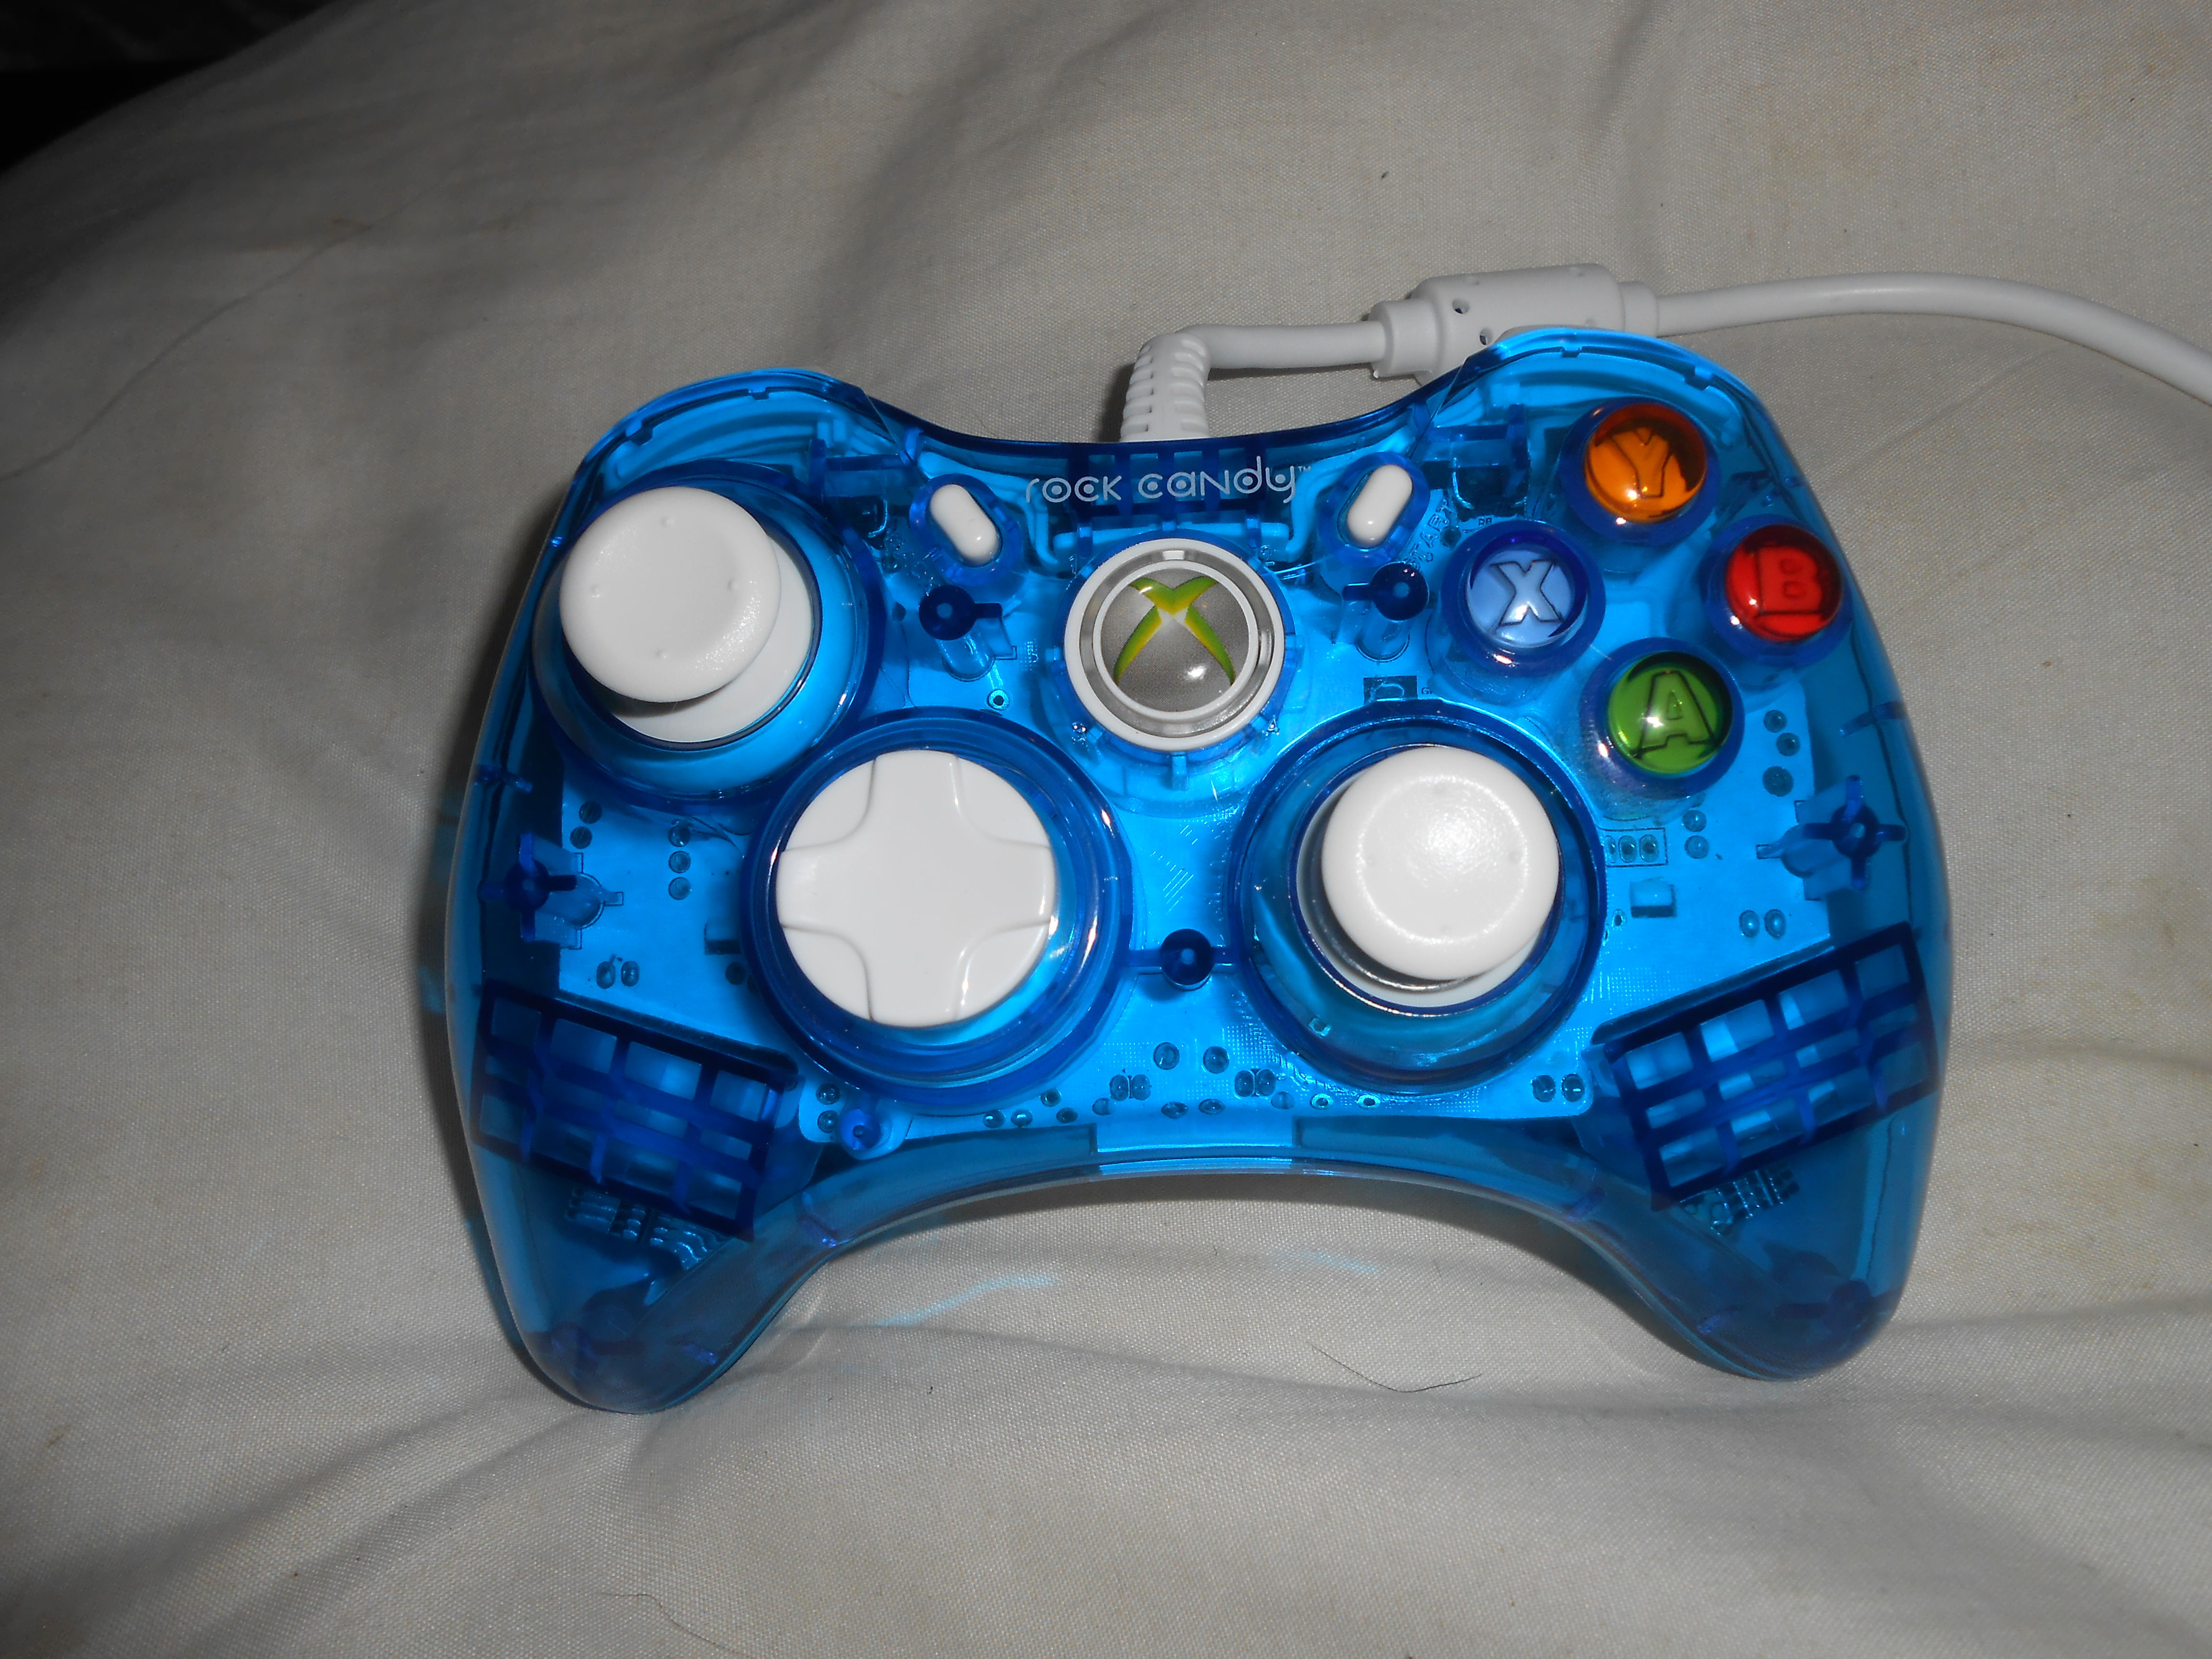 hight resolution of image not found or type unknown rock candy xbox 360 wireless controllers simple wiring diagram rh